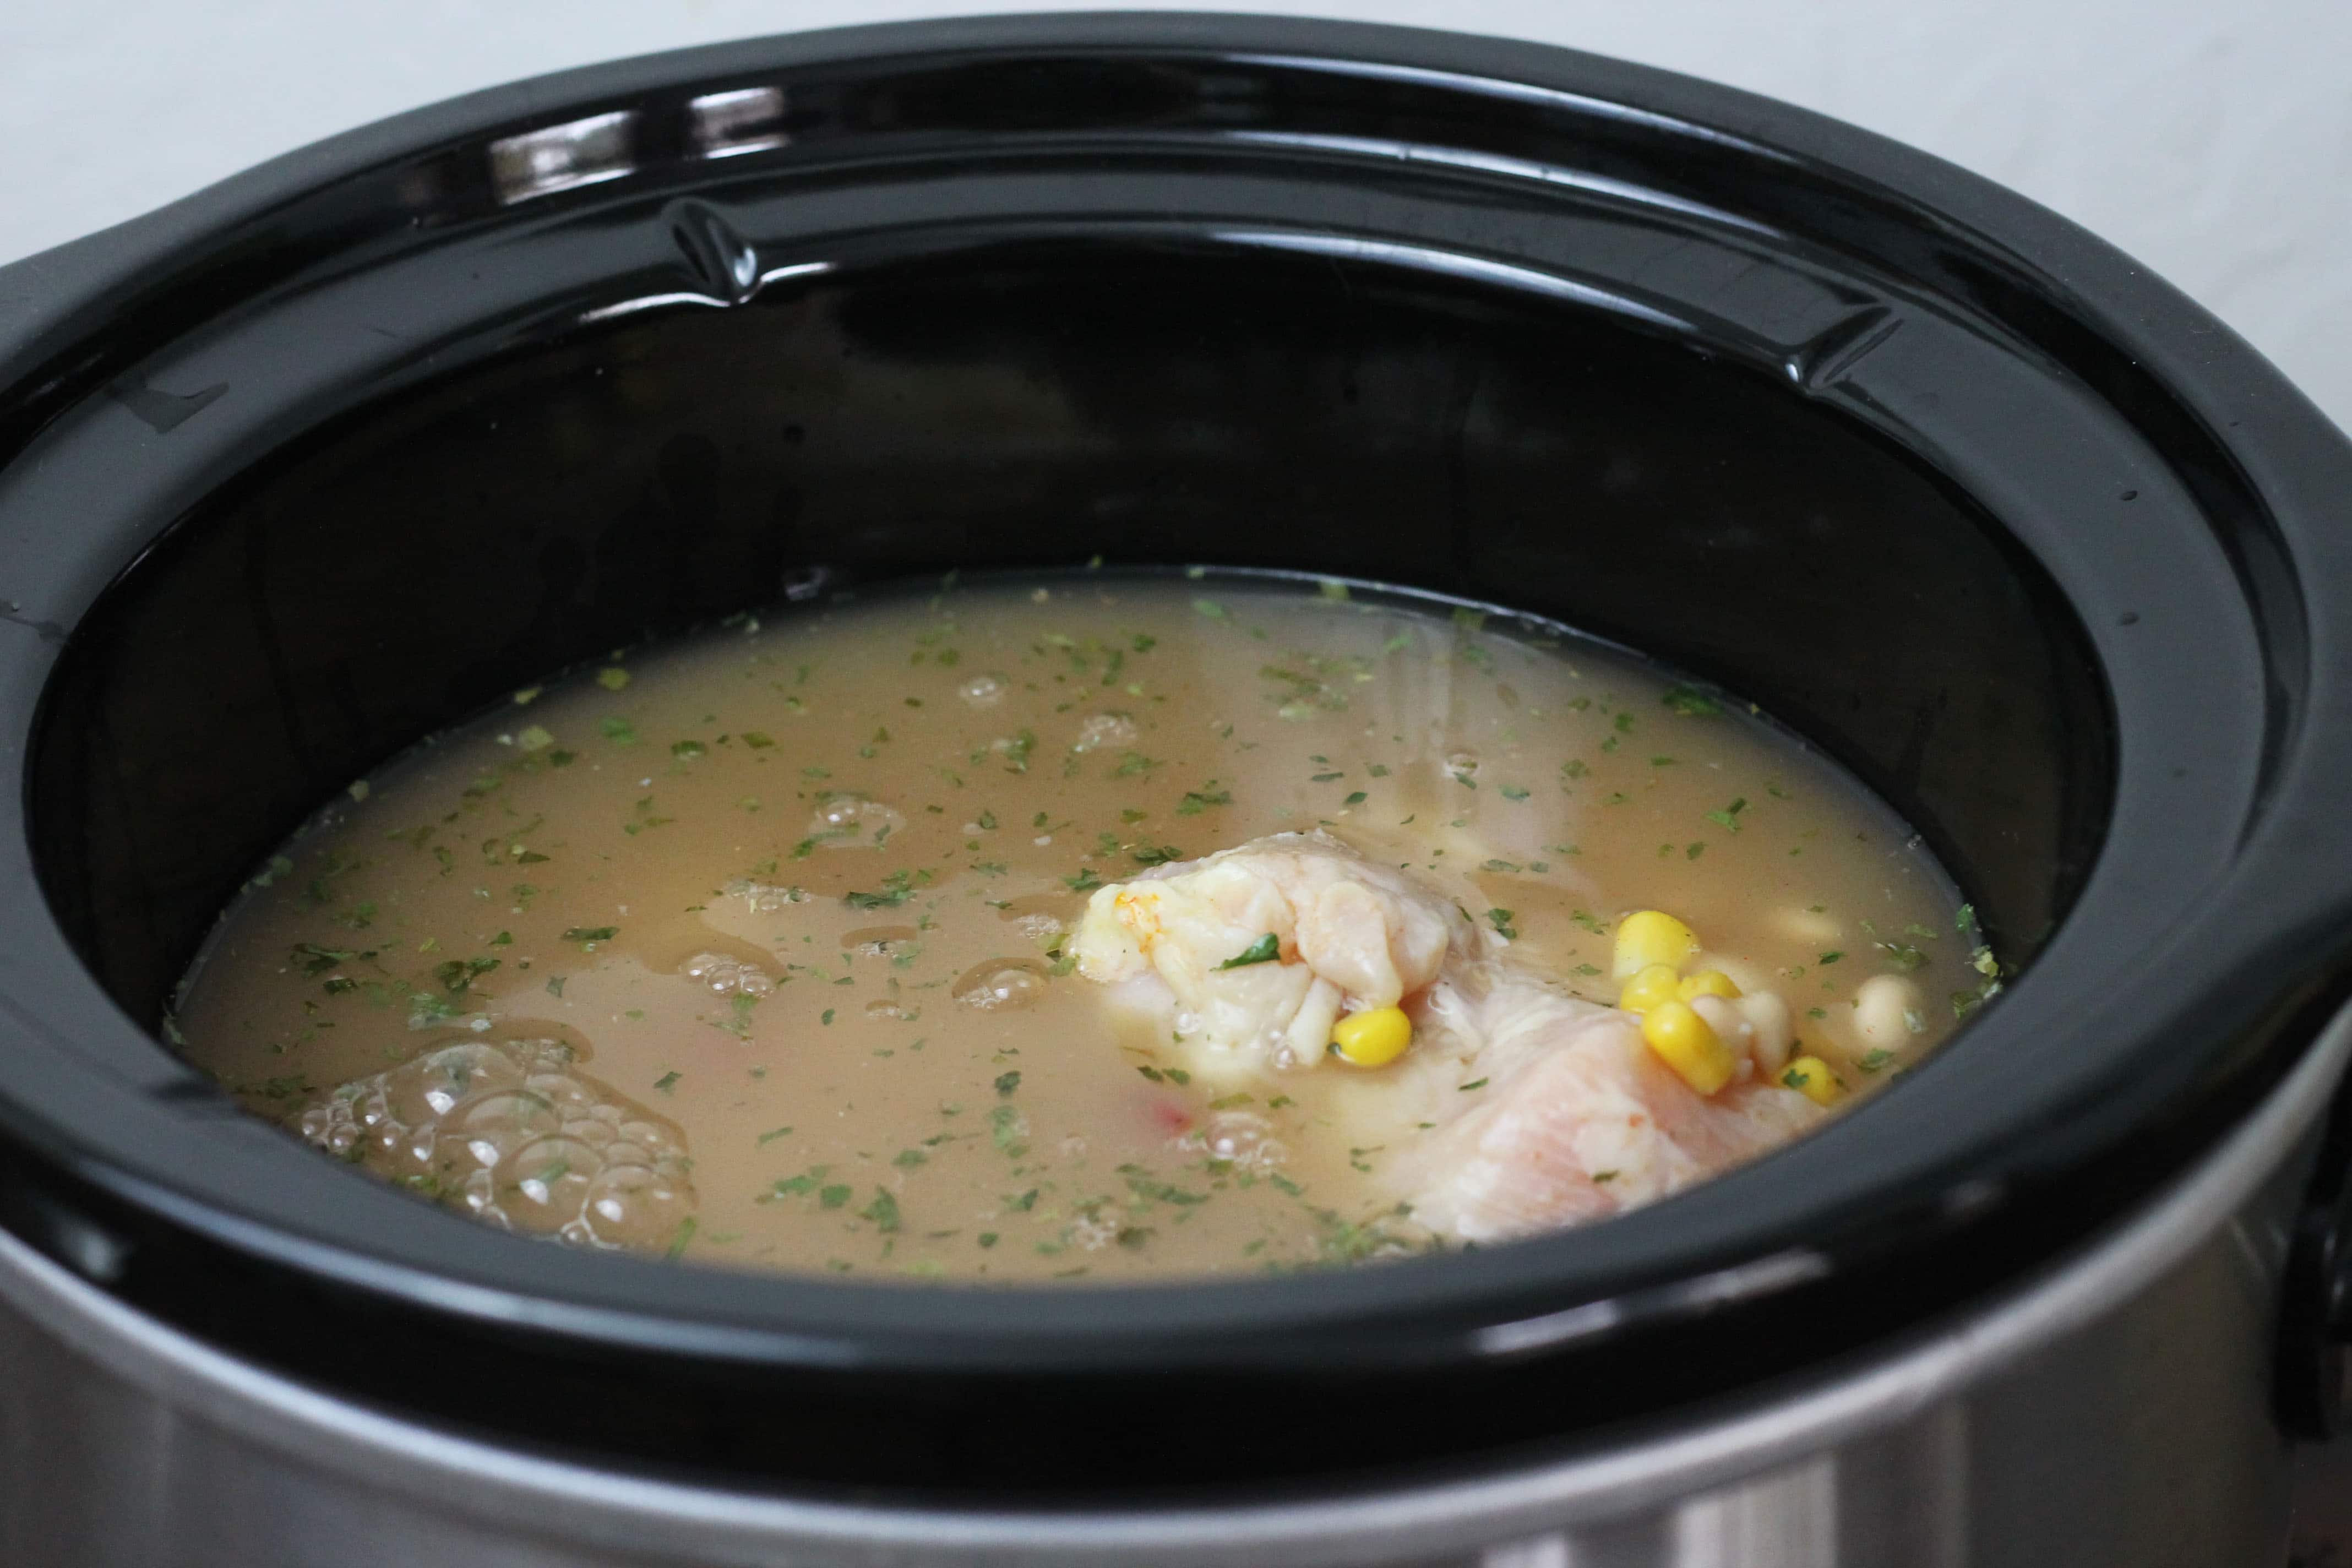 uncooked chicken soaking in chicken broth with corn Diced tomatoes and cilantro in a black crock pot.